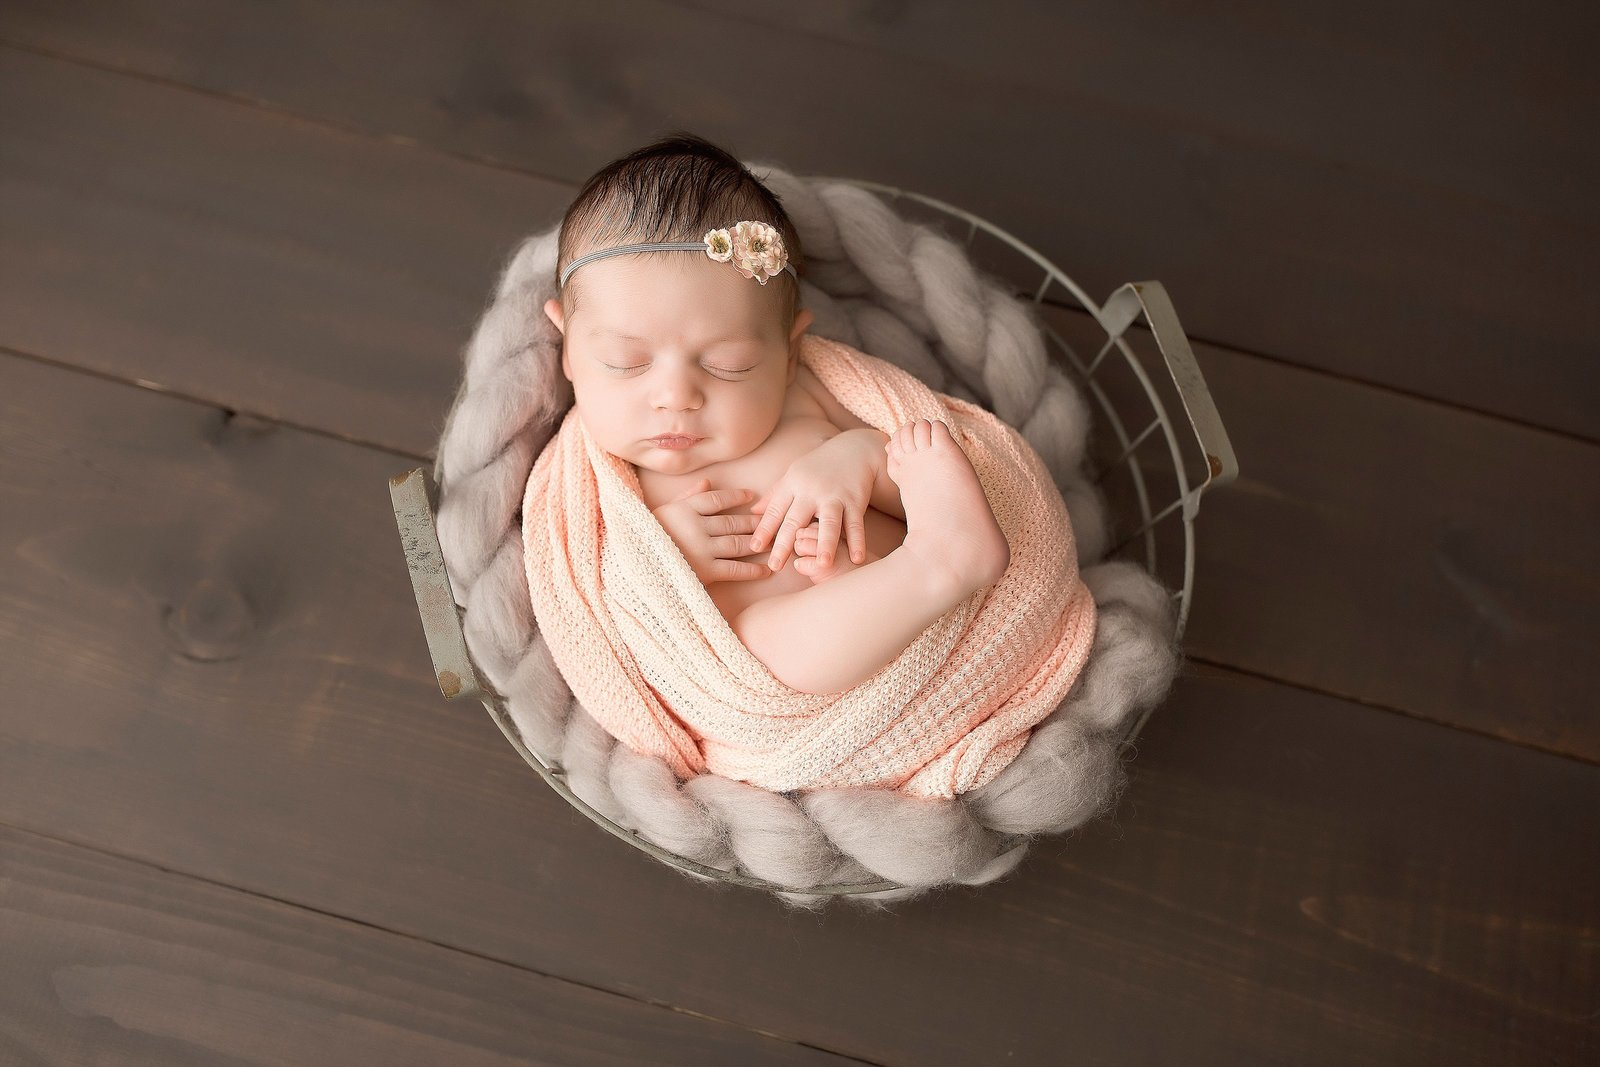 Sleeping baby girl in wire basket